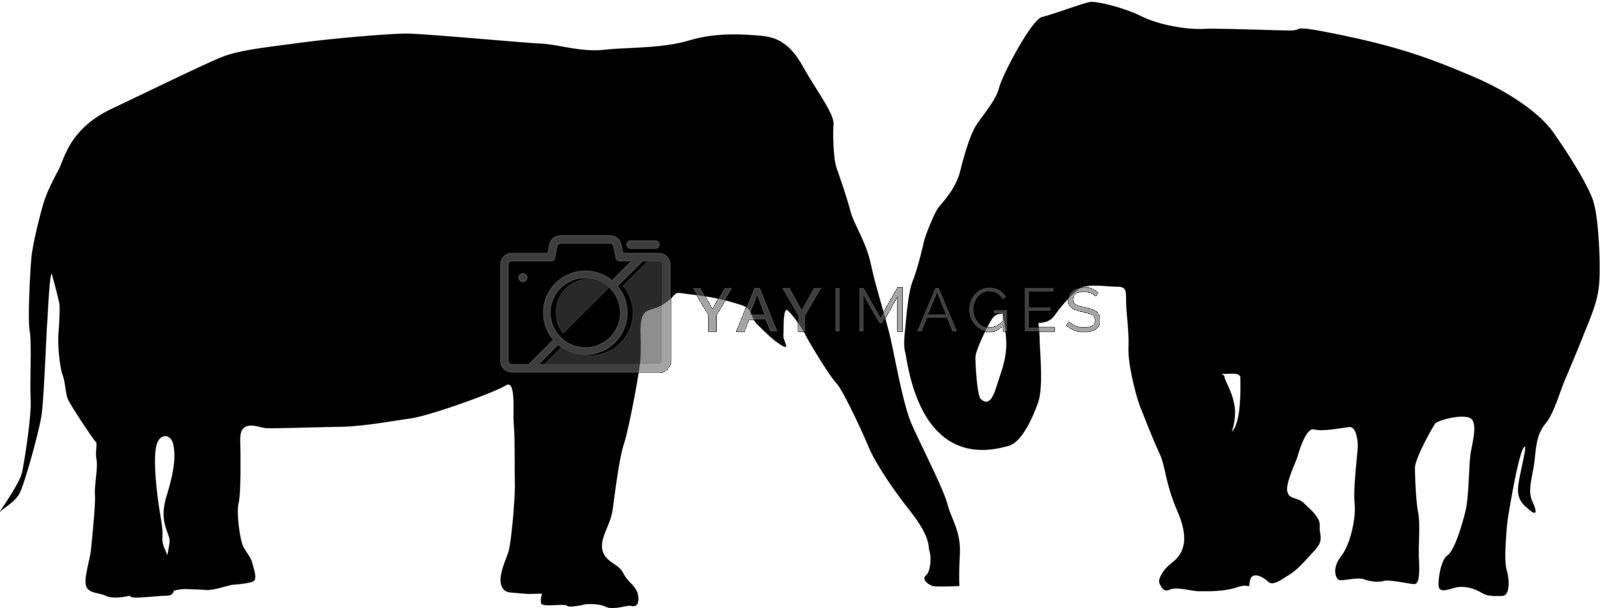 Two elephants love card, isolated objects on white background